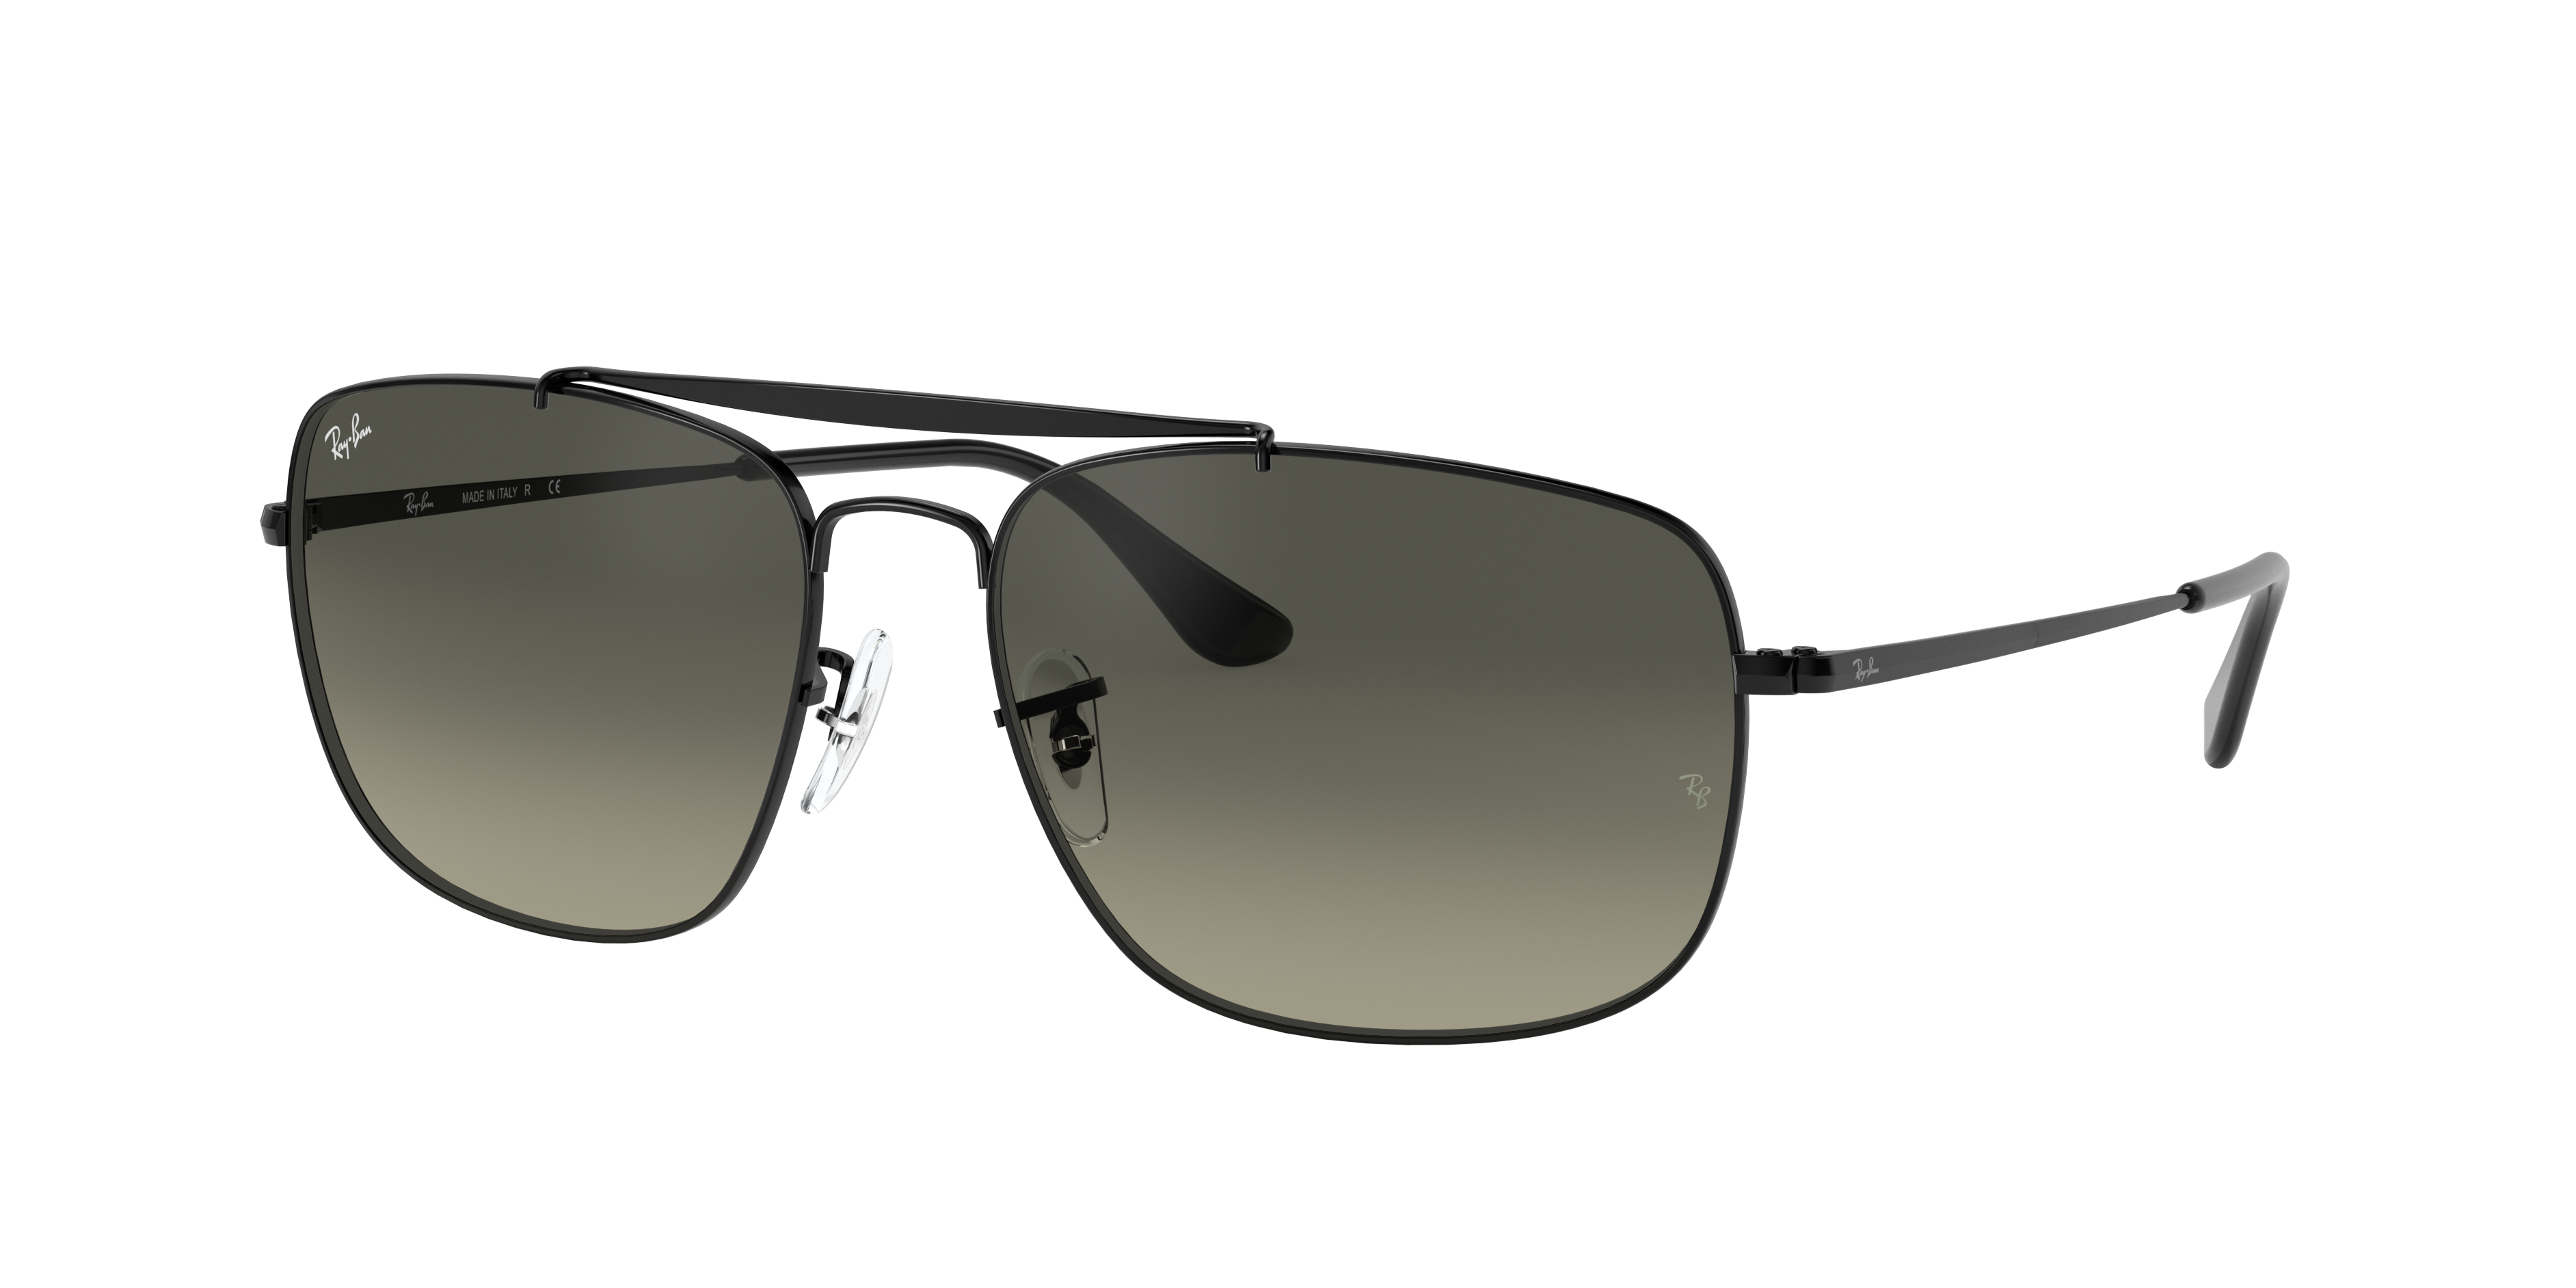 Ray-Ban Colonel Black, Gray Lenses - RB3560